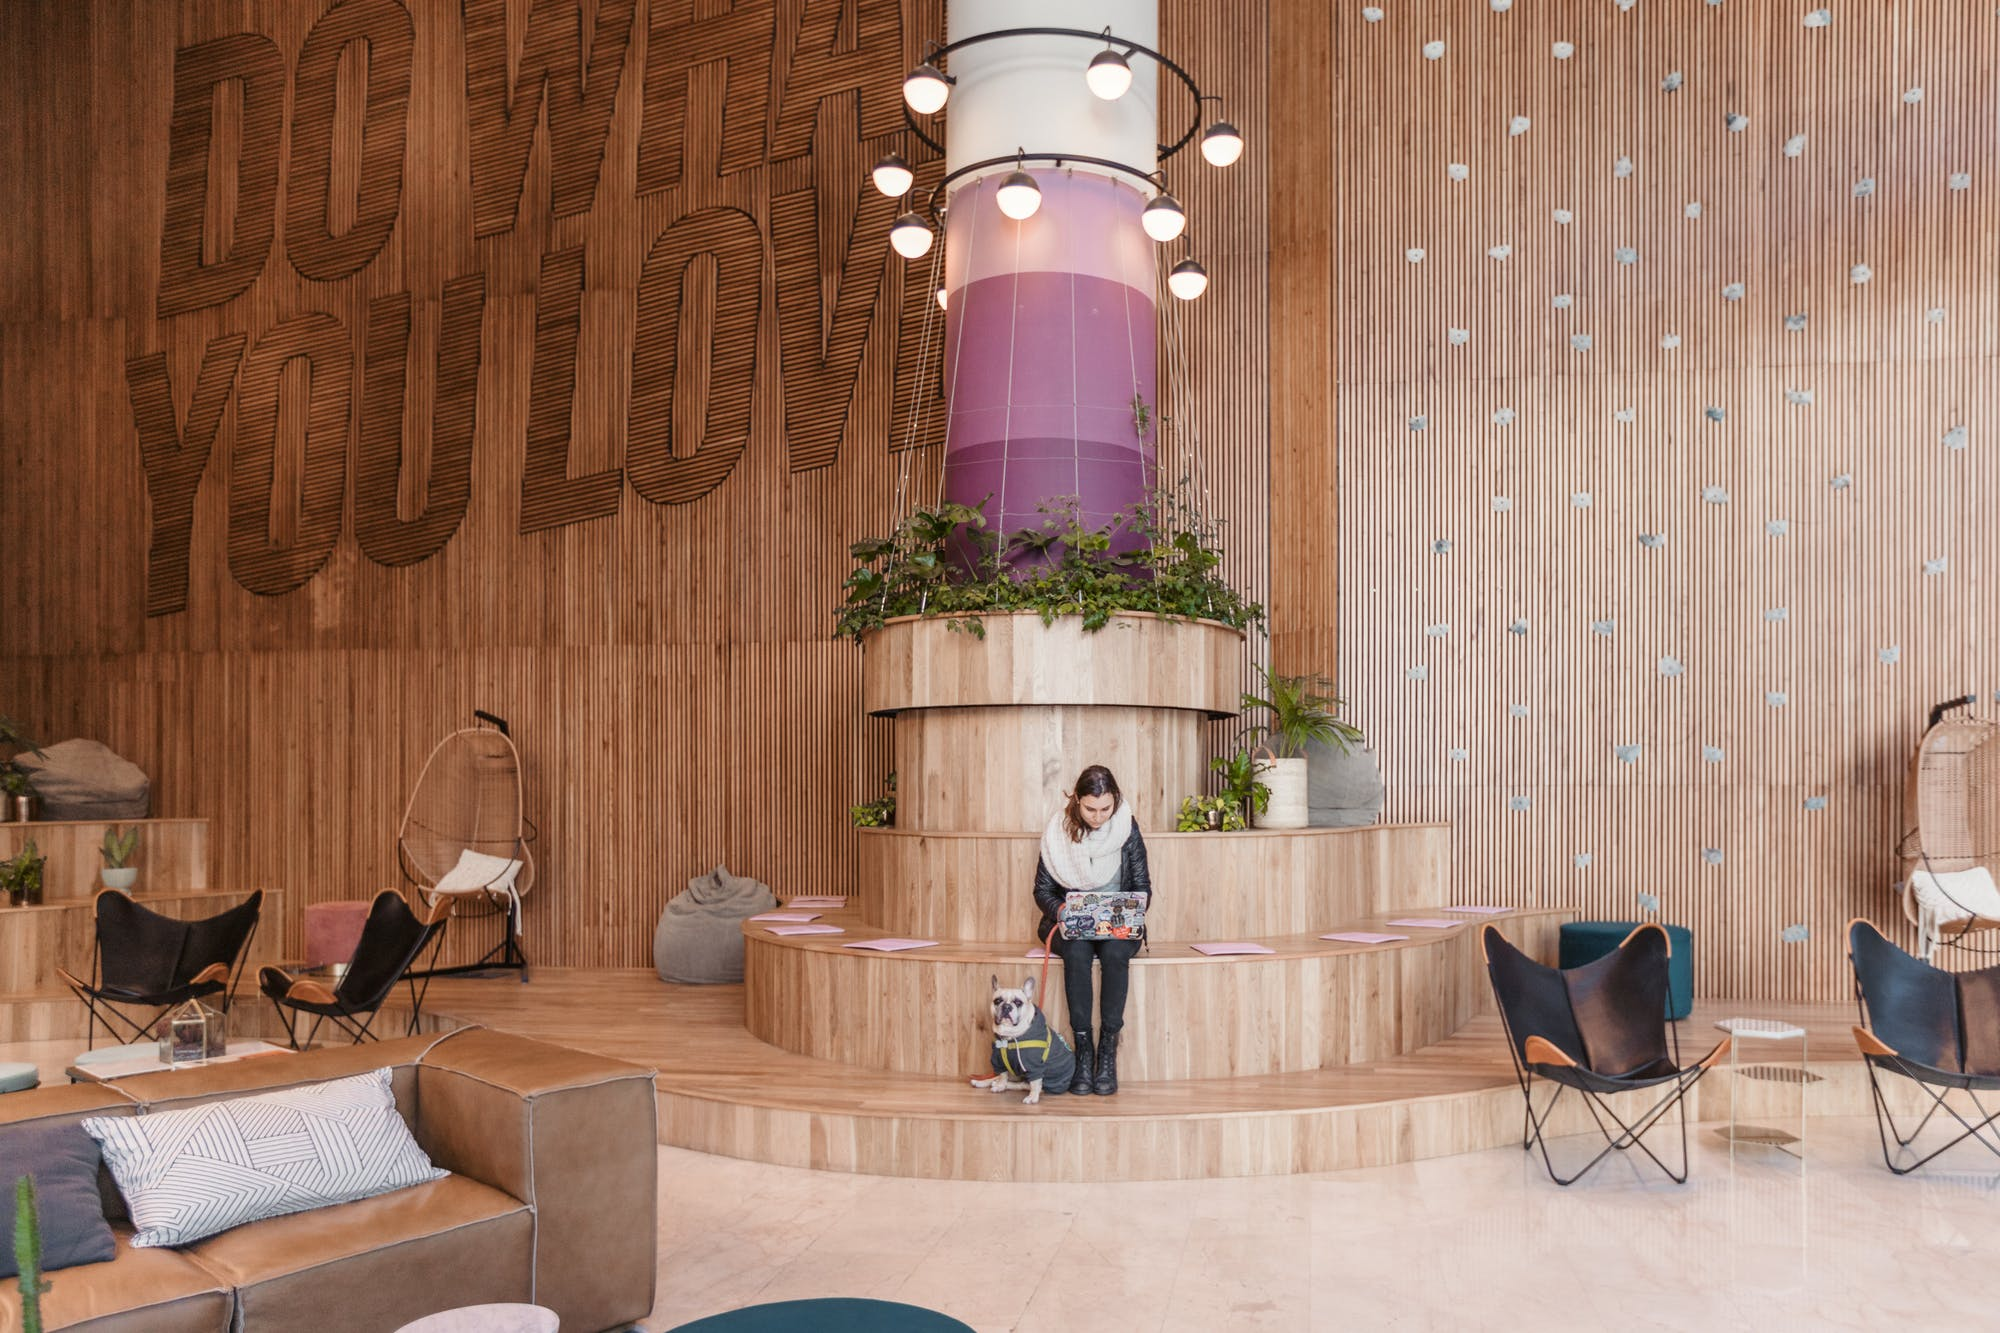 Photos show other WeWork building but will be similar decor